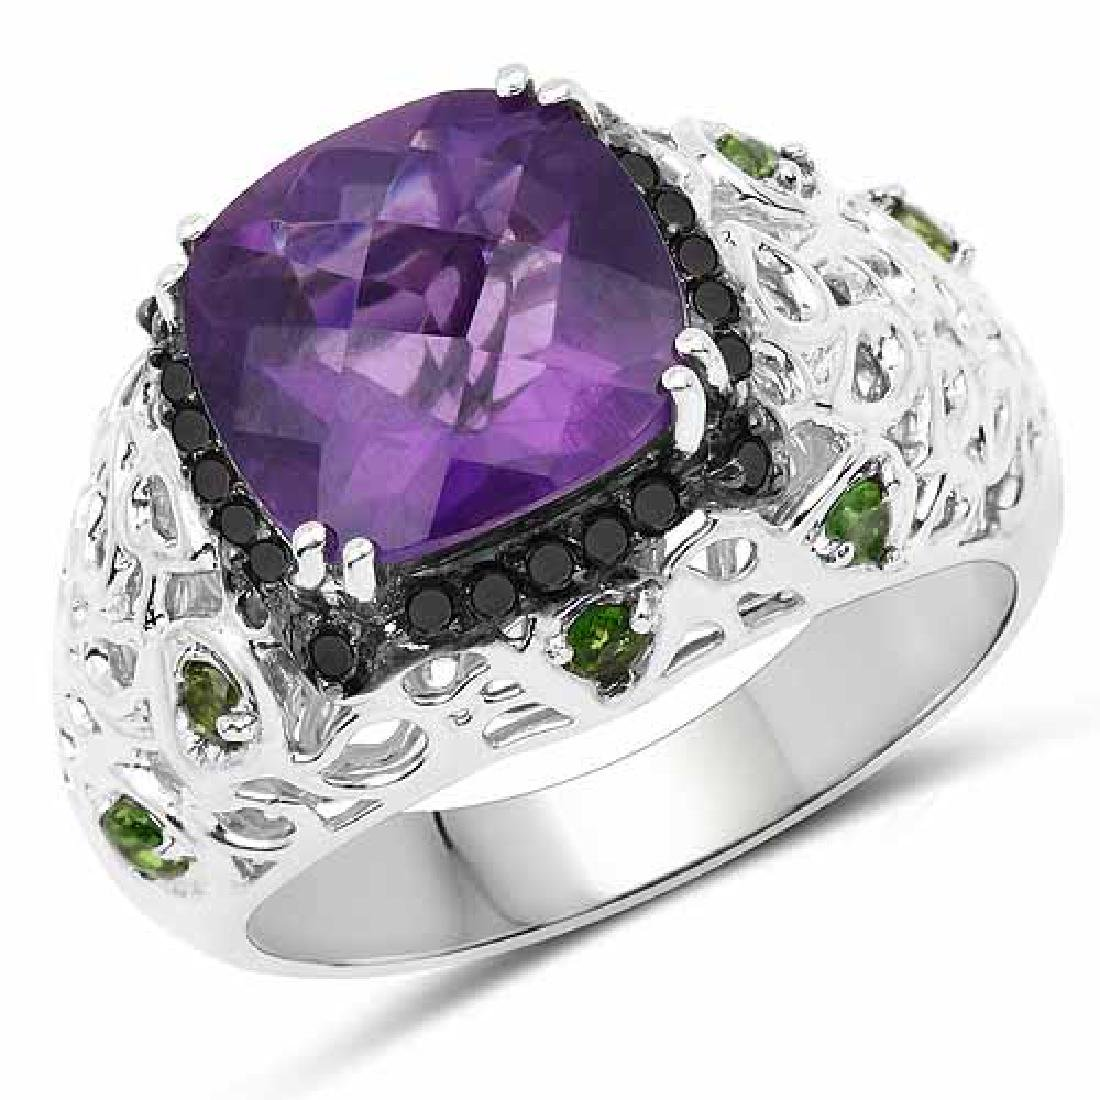 3.73 Carat Genuine Amethyst Chrome Diopside and Black